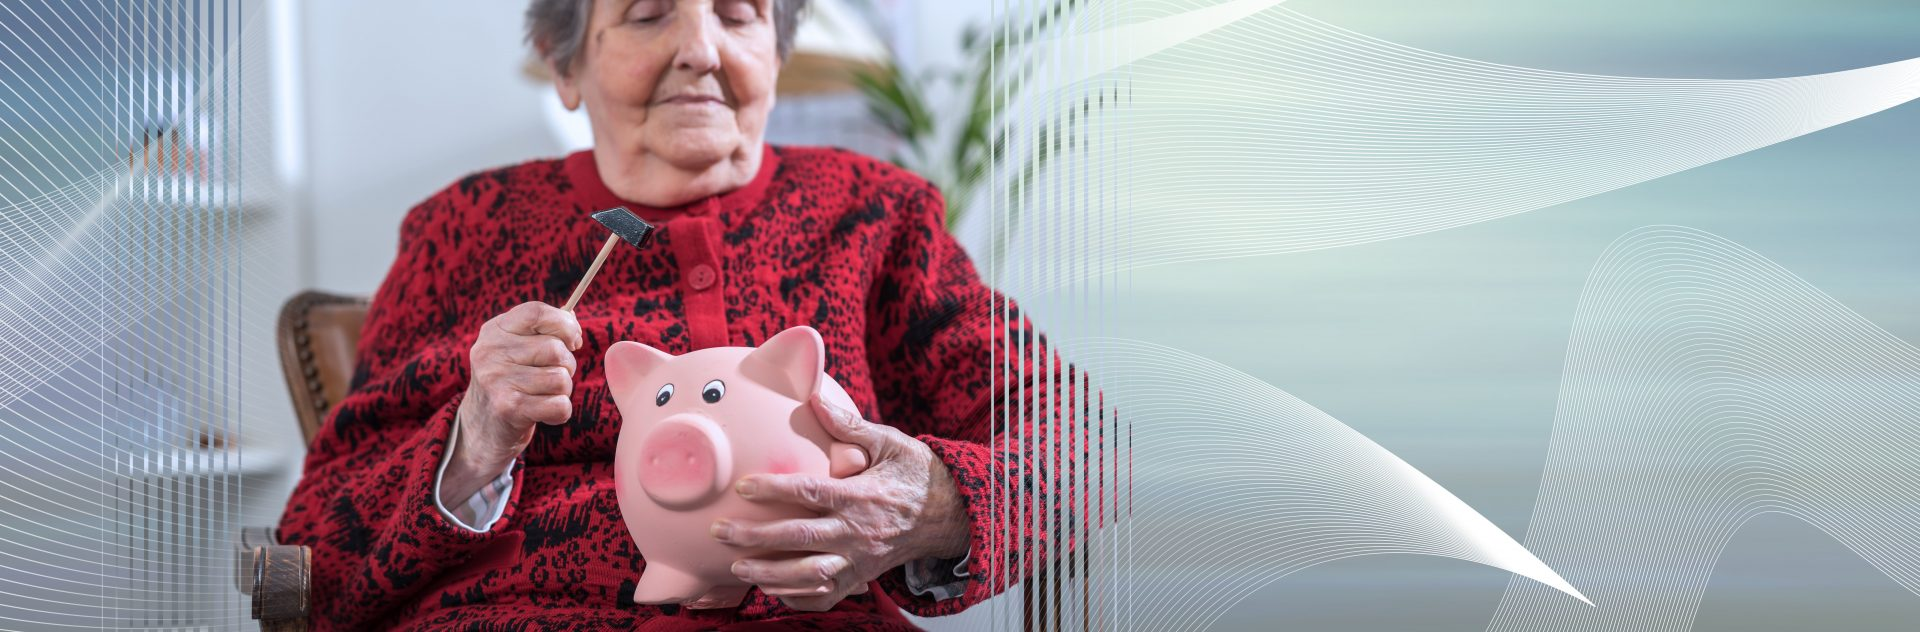 Woman Cracking Open Piggy Bank full of retirement savings